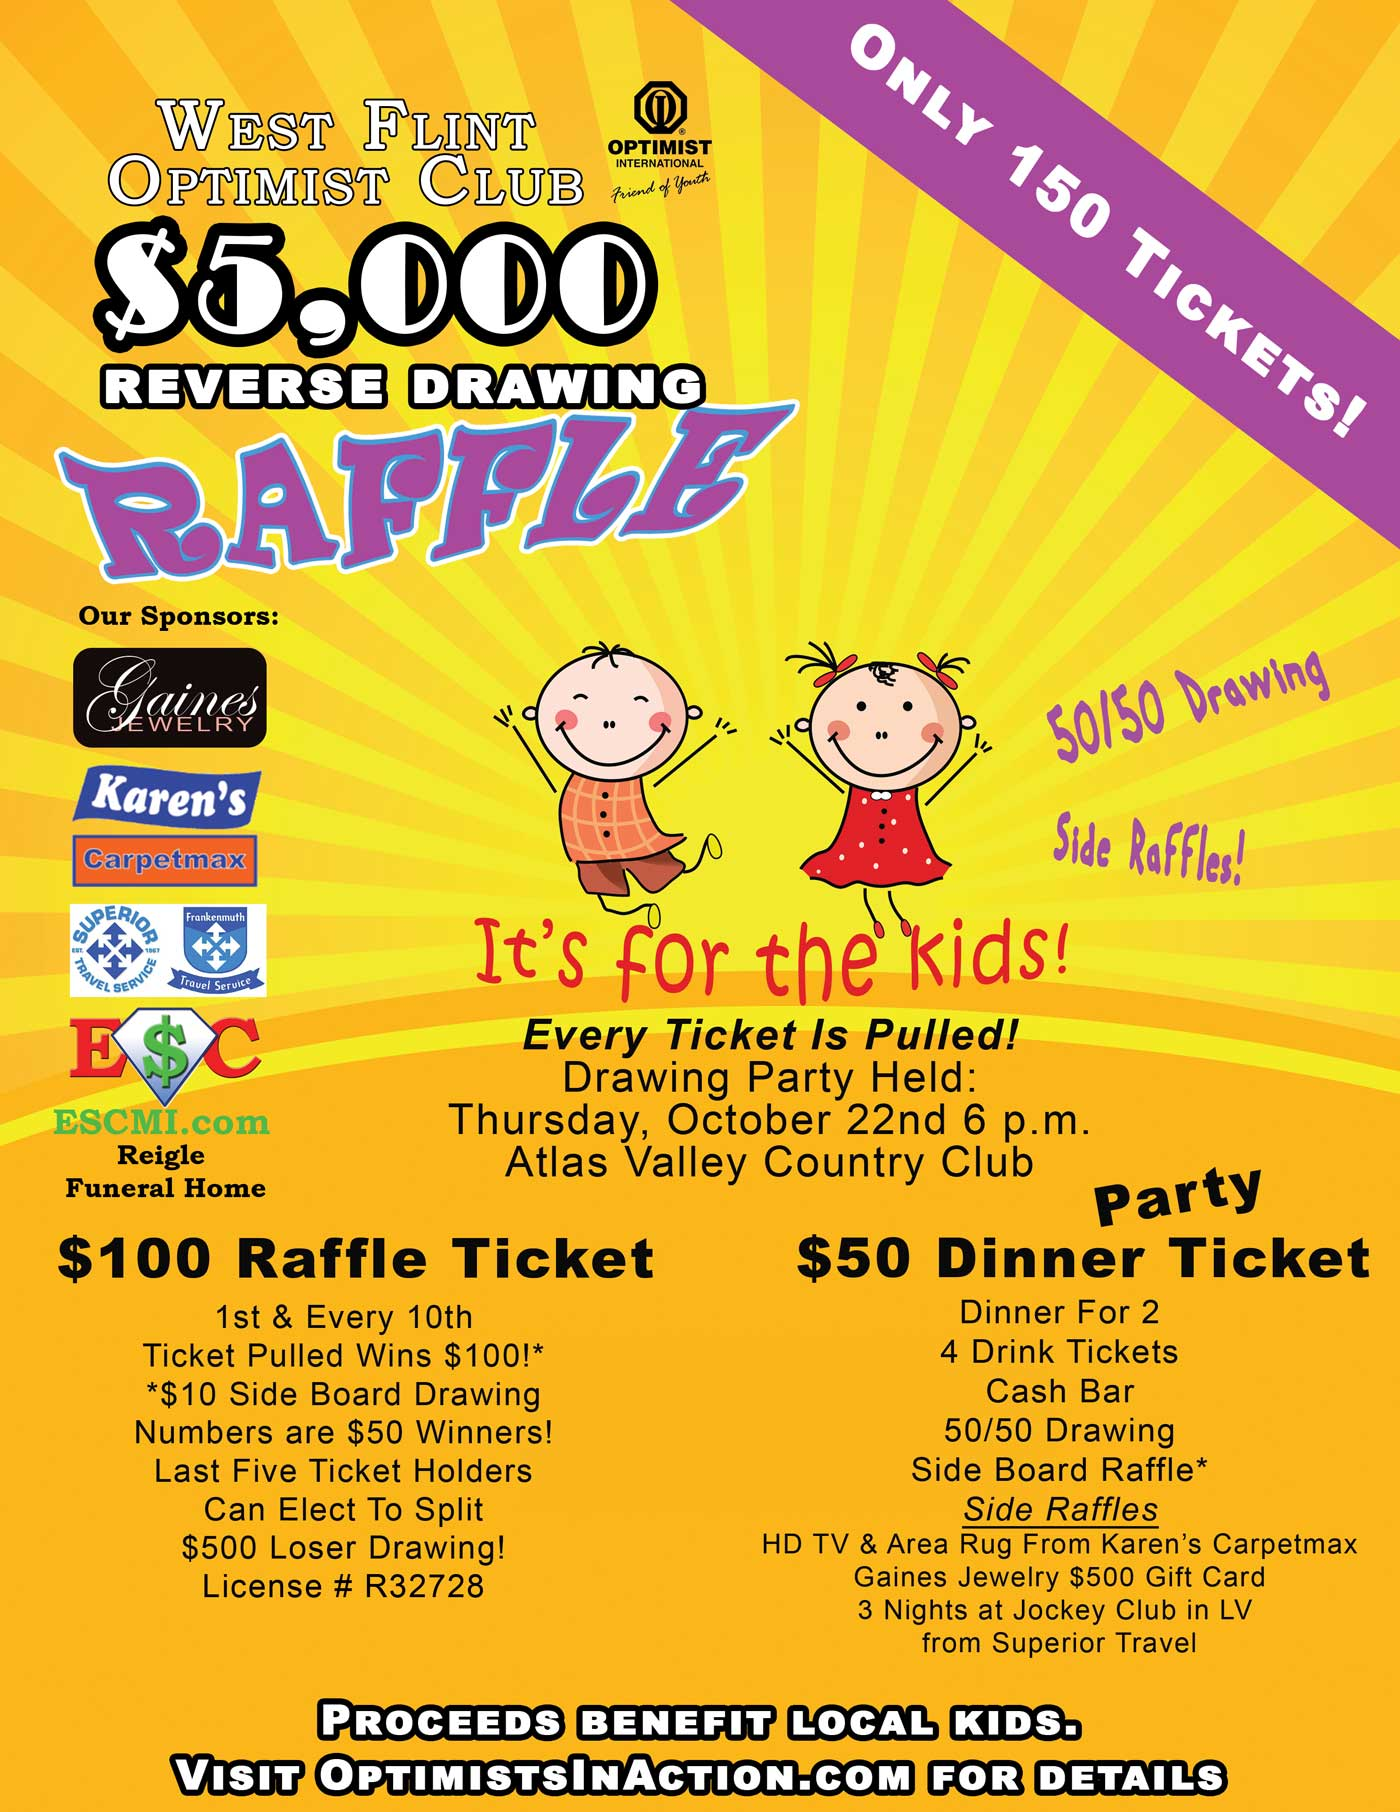 187 West Flint Optimists Hosts 29th Annual 5 000 Reverse Raffle